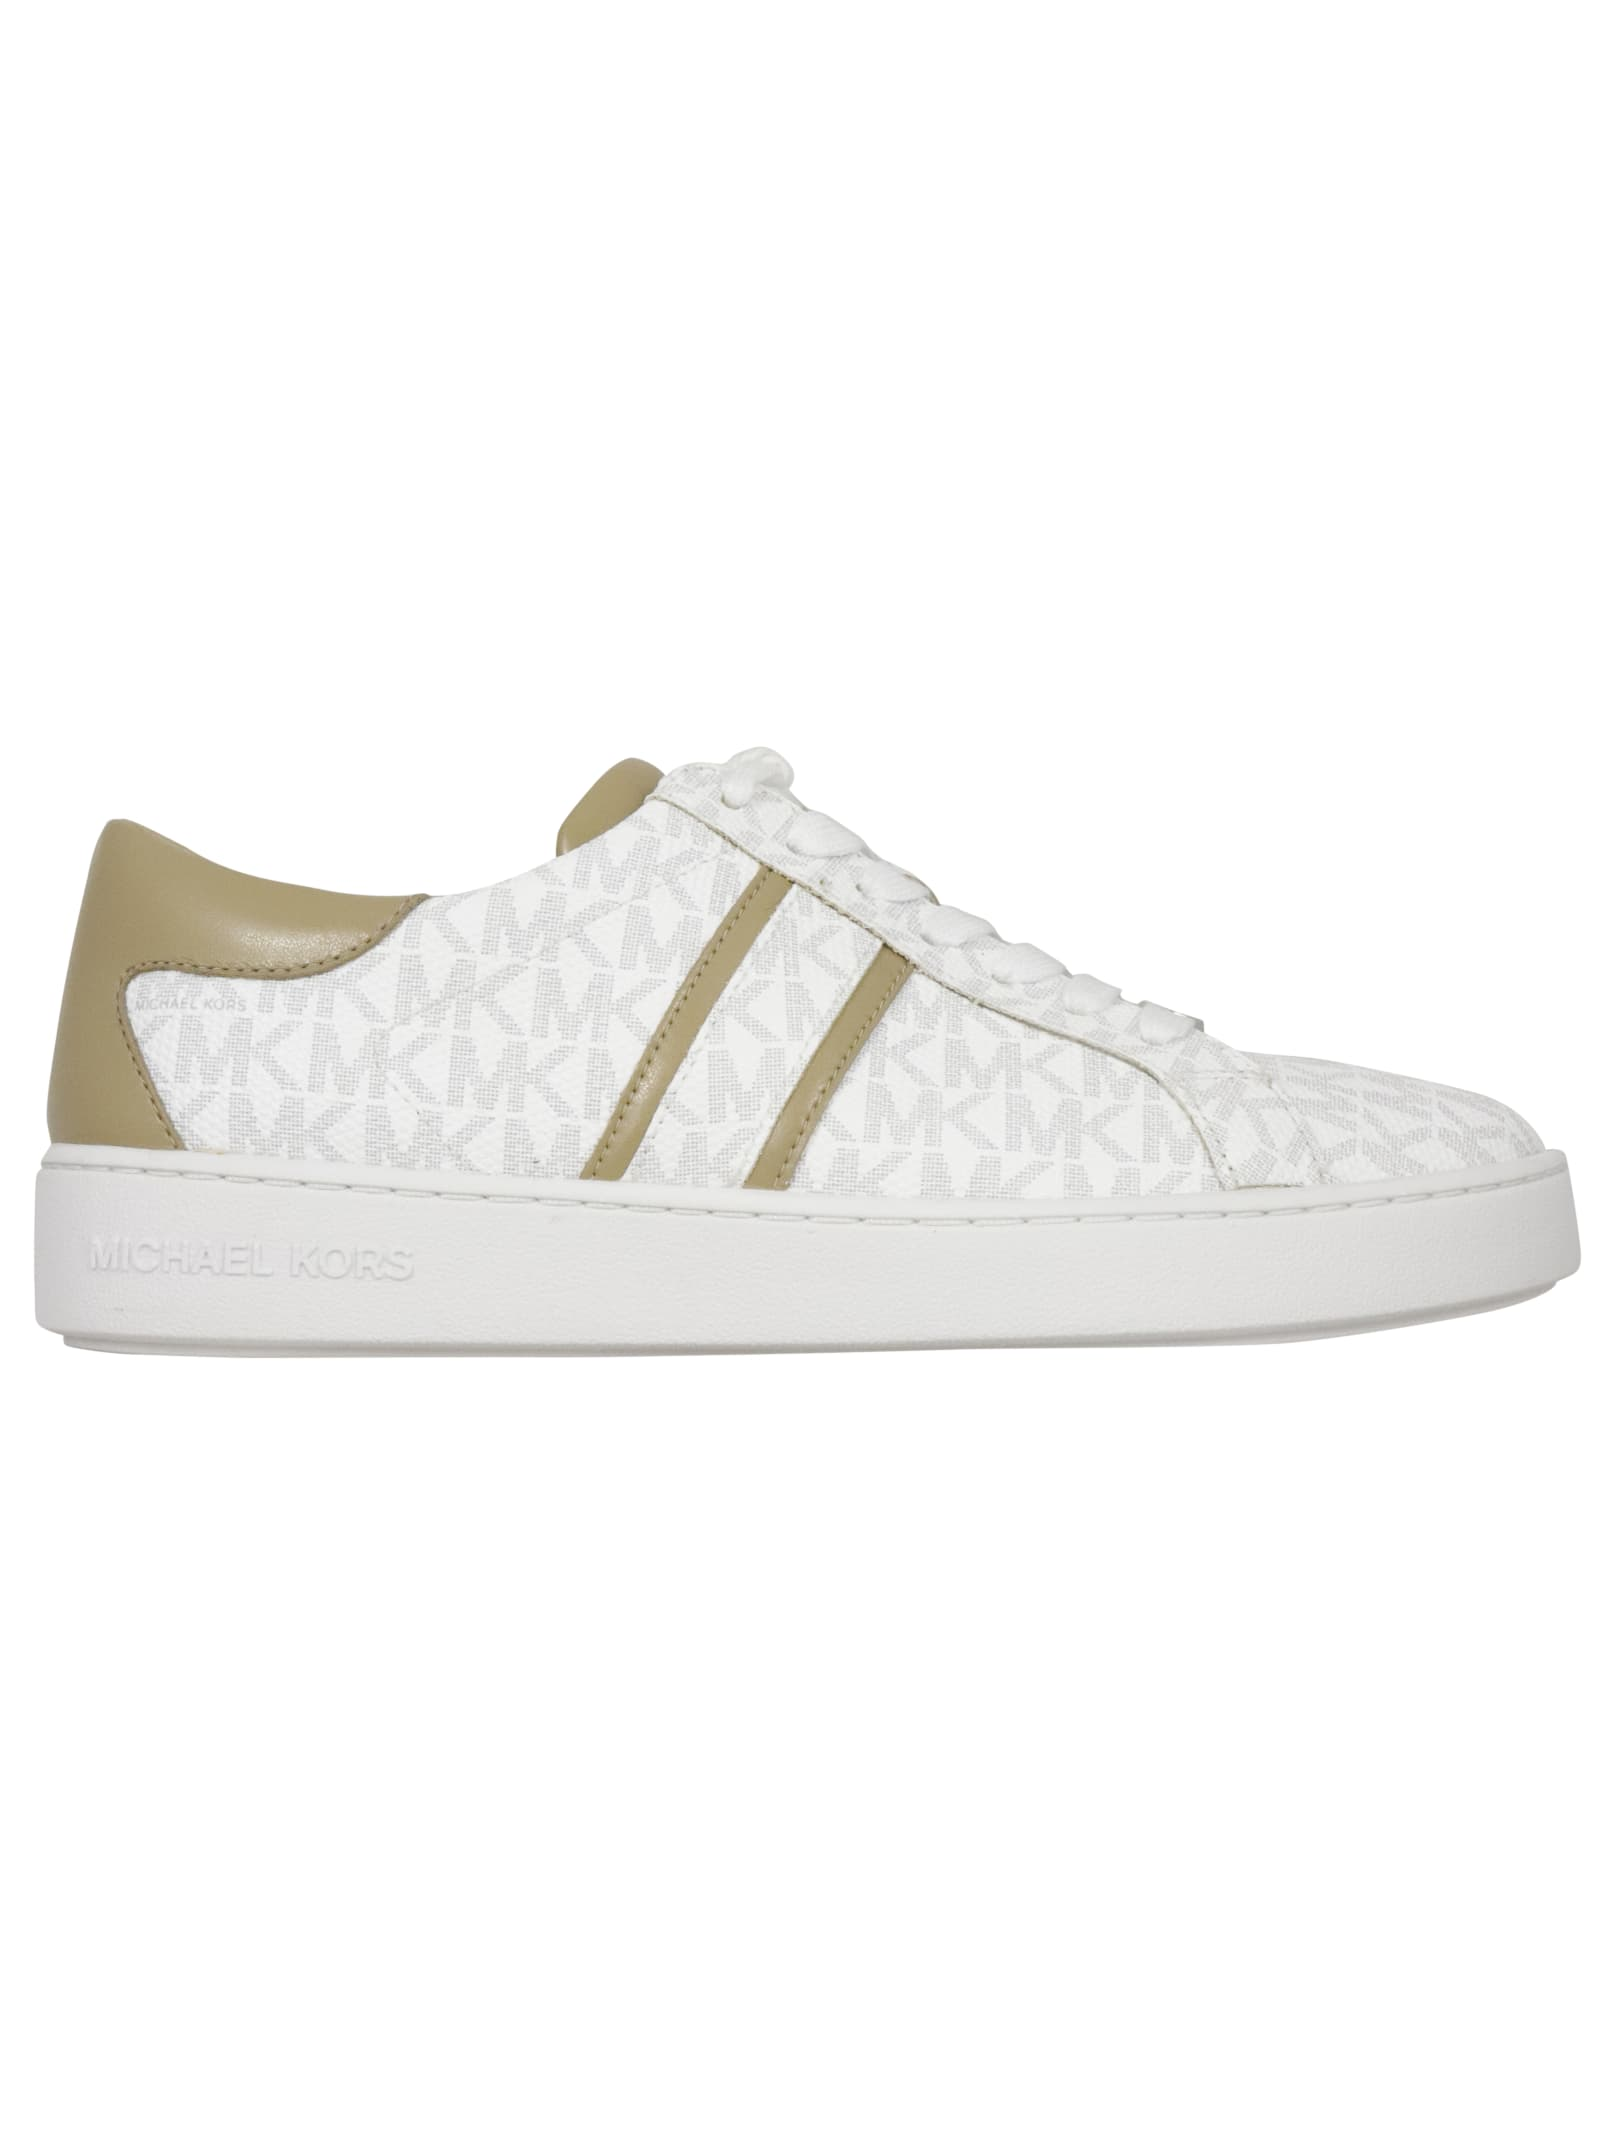 MICHAEL KORS Leathers KEATON STRIPE LACE UP SNEAKER